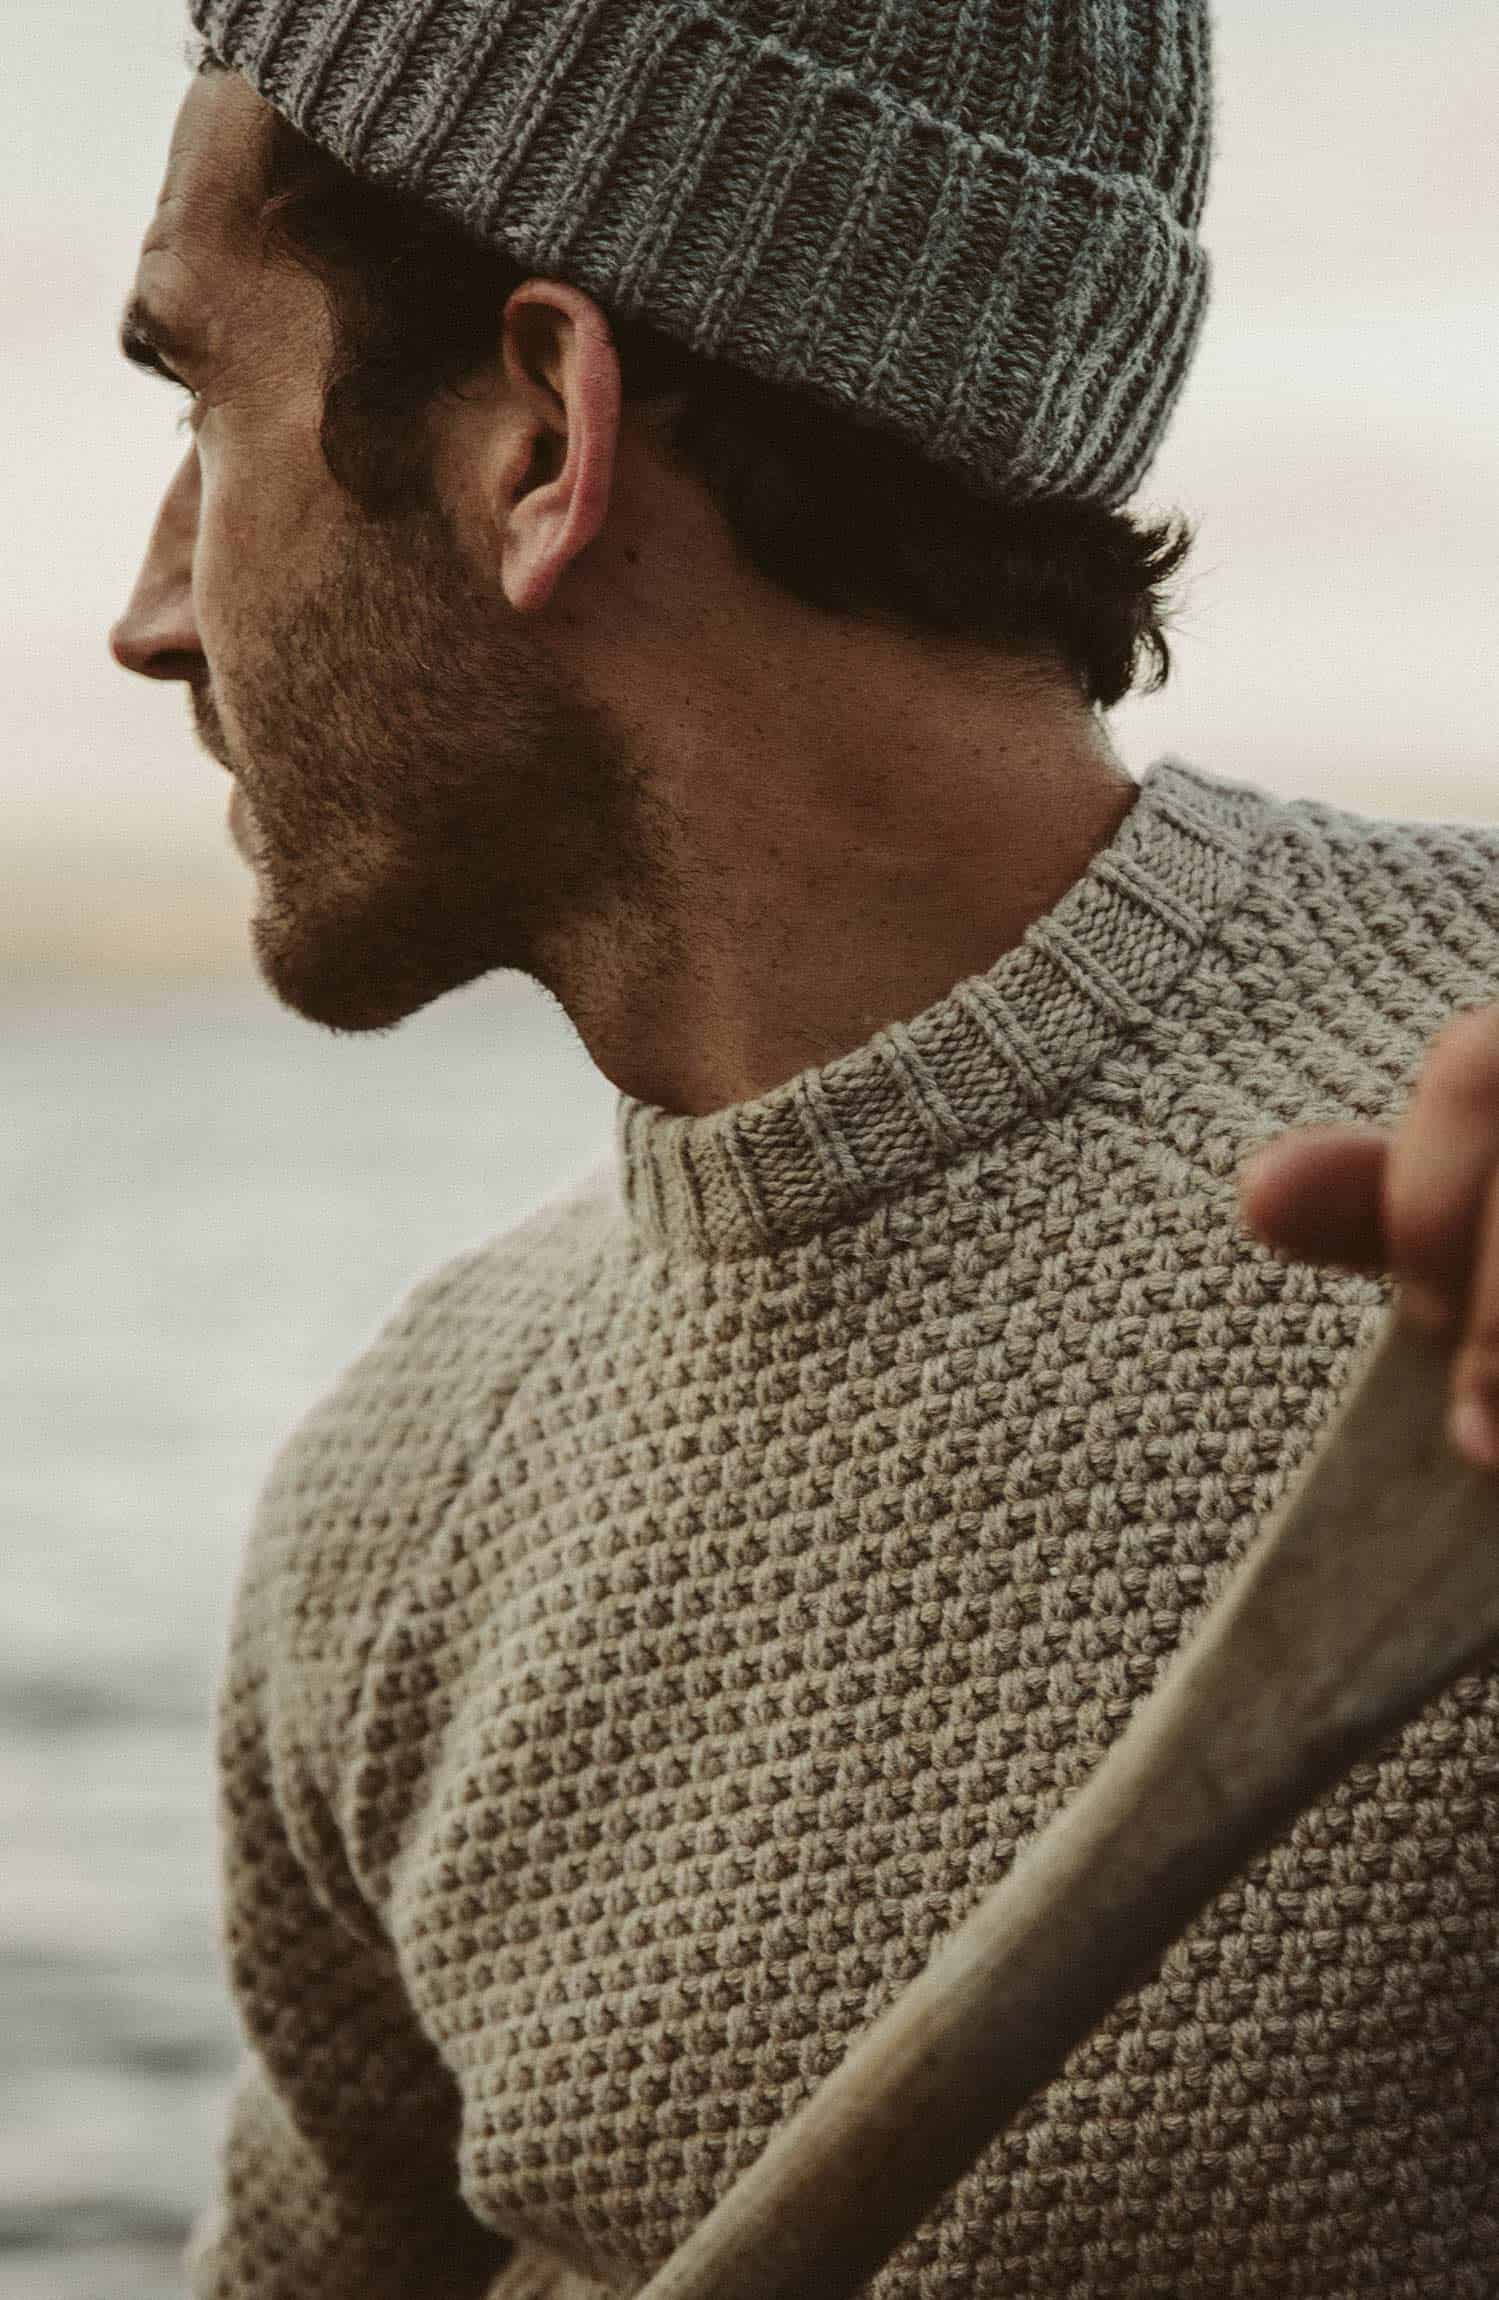 フィッシャーマンズセーター The Fisherman Sweater in Natural Melange Collection